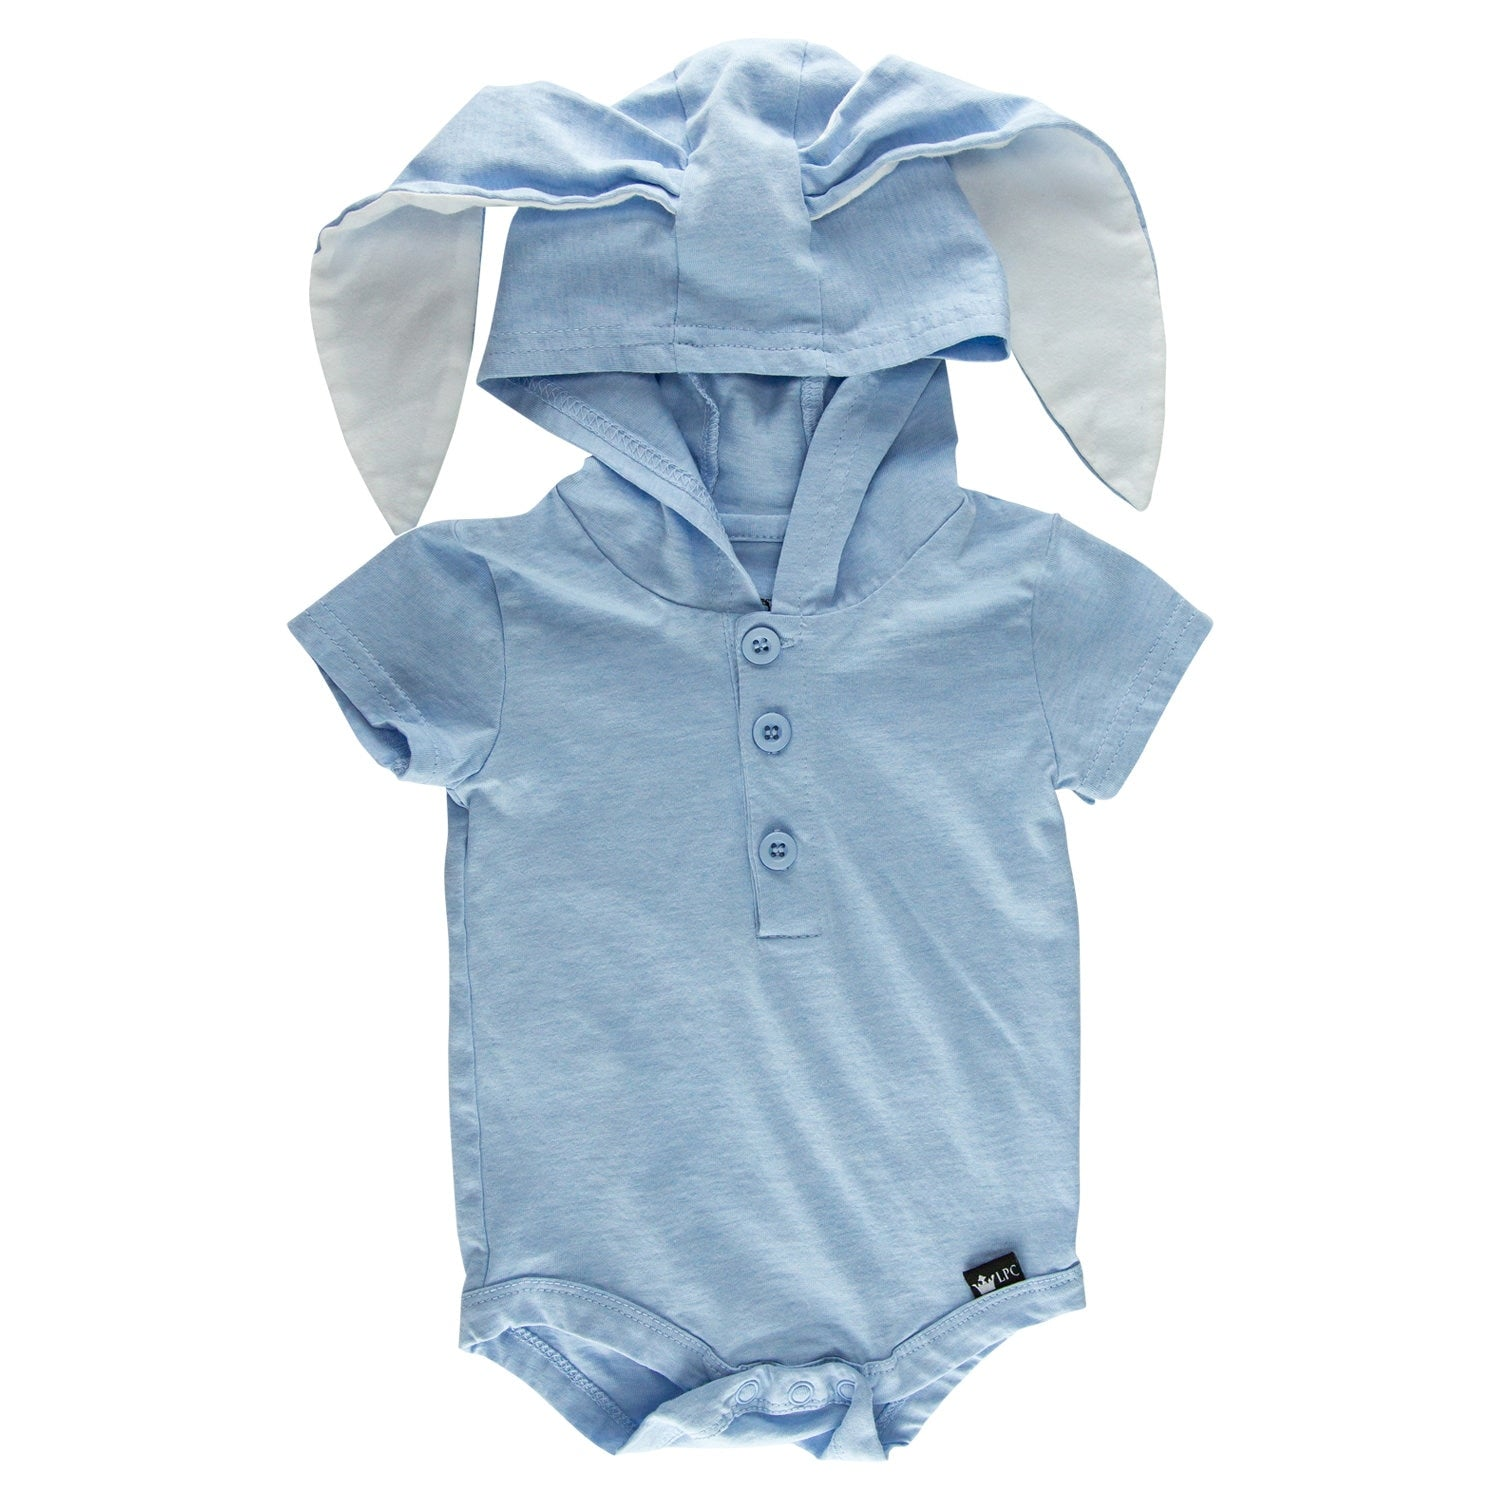 bho-bb-baby-blue-bunny-hoodie-bodysuit-front-product.jpg